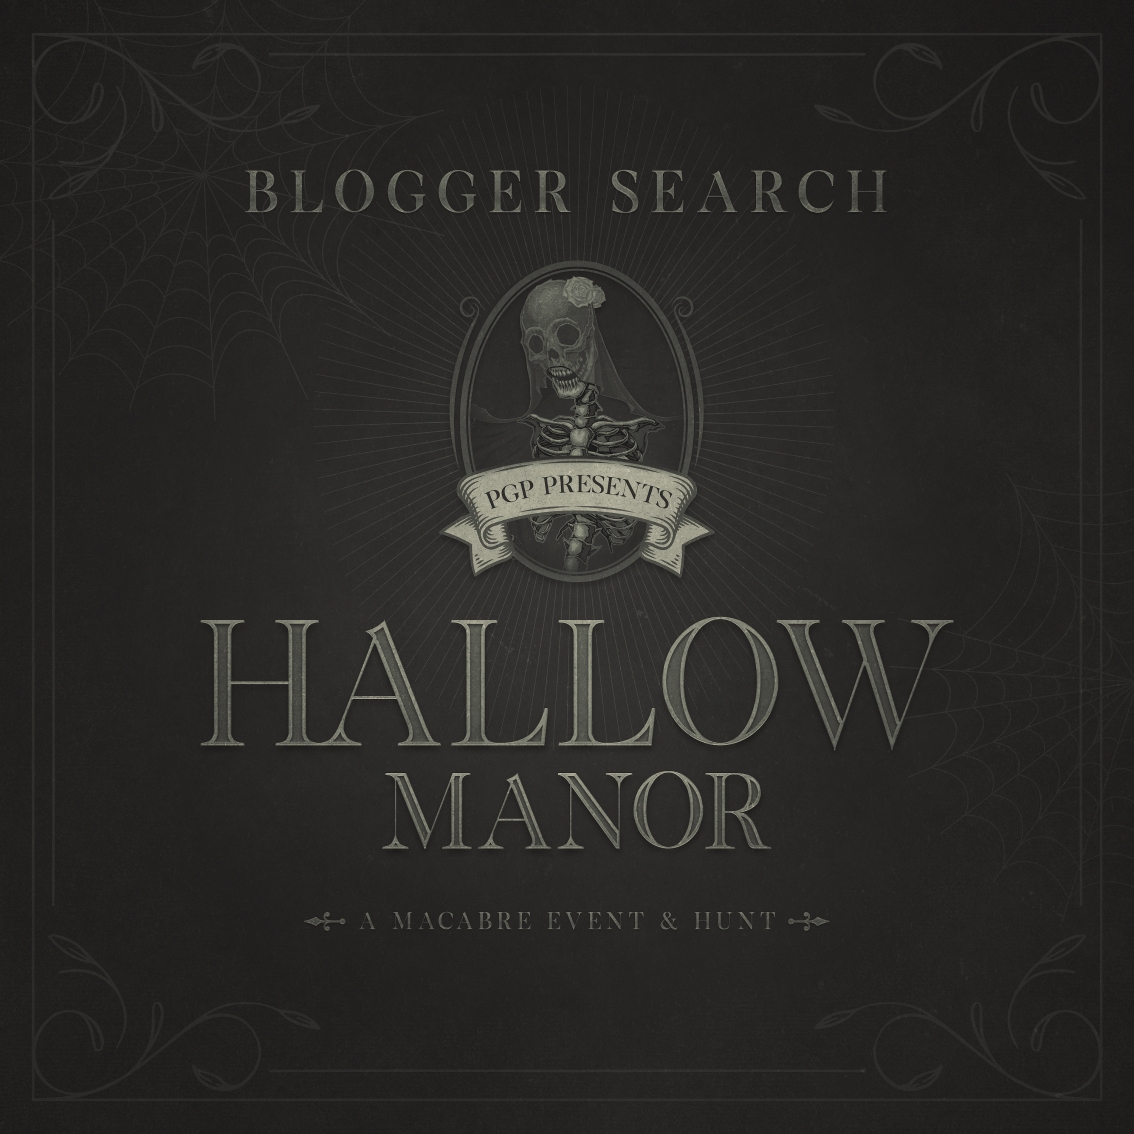 Hallow Manor – Blogger Applications!